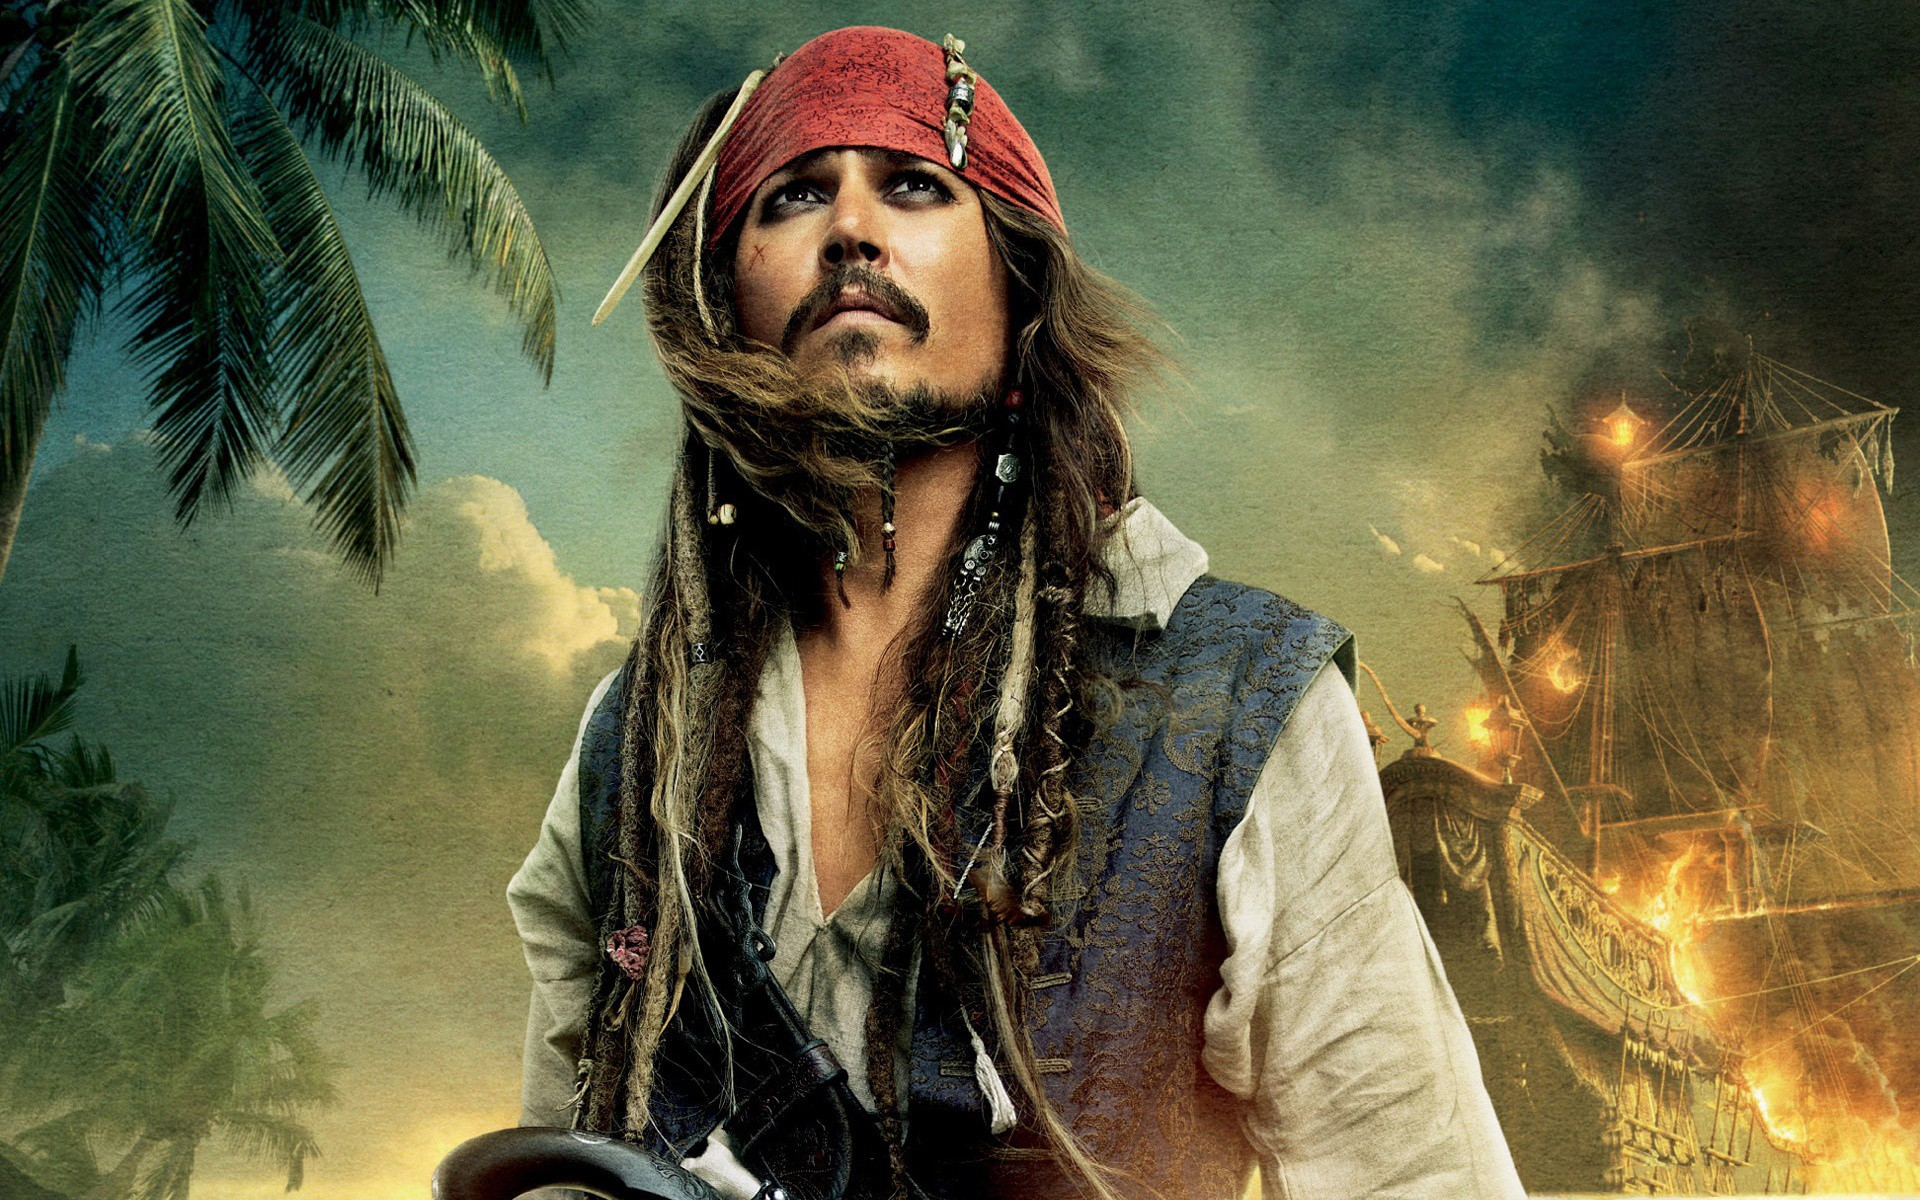 Johnny Dep in the film Pirates of the Caribbean